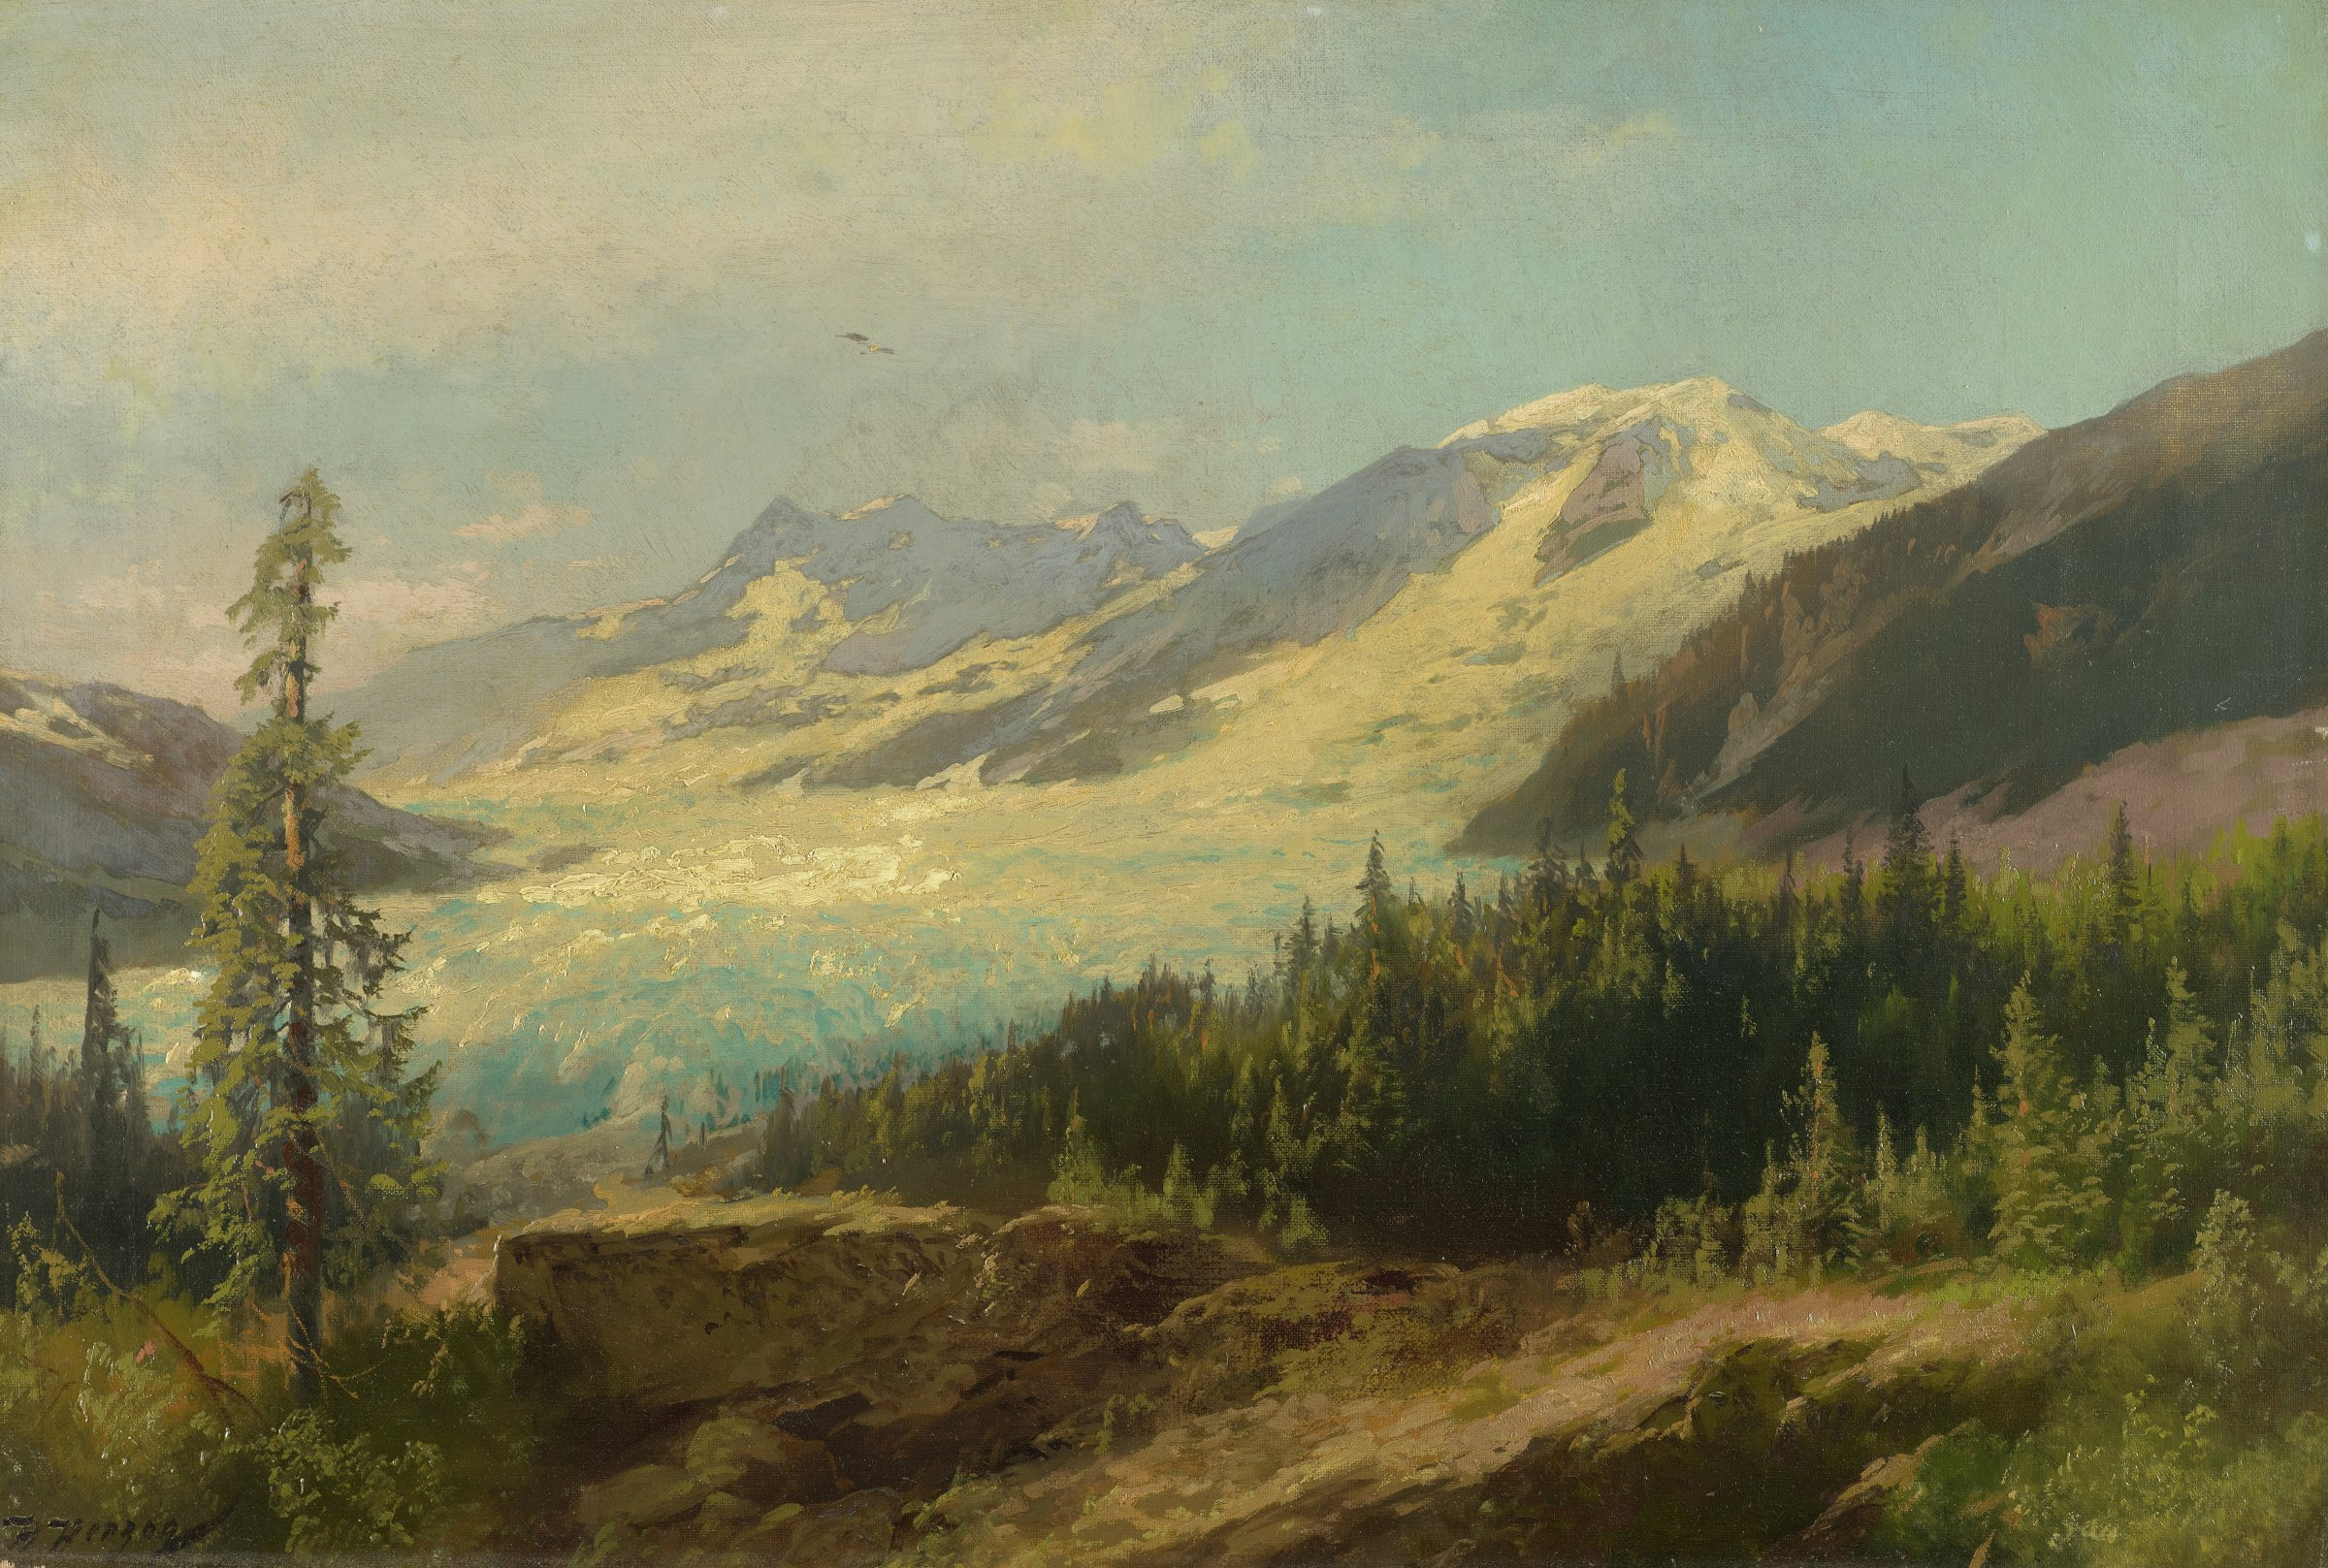 Pines in the Mountains, Herman Herzog, oil on canvas